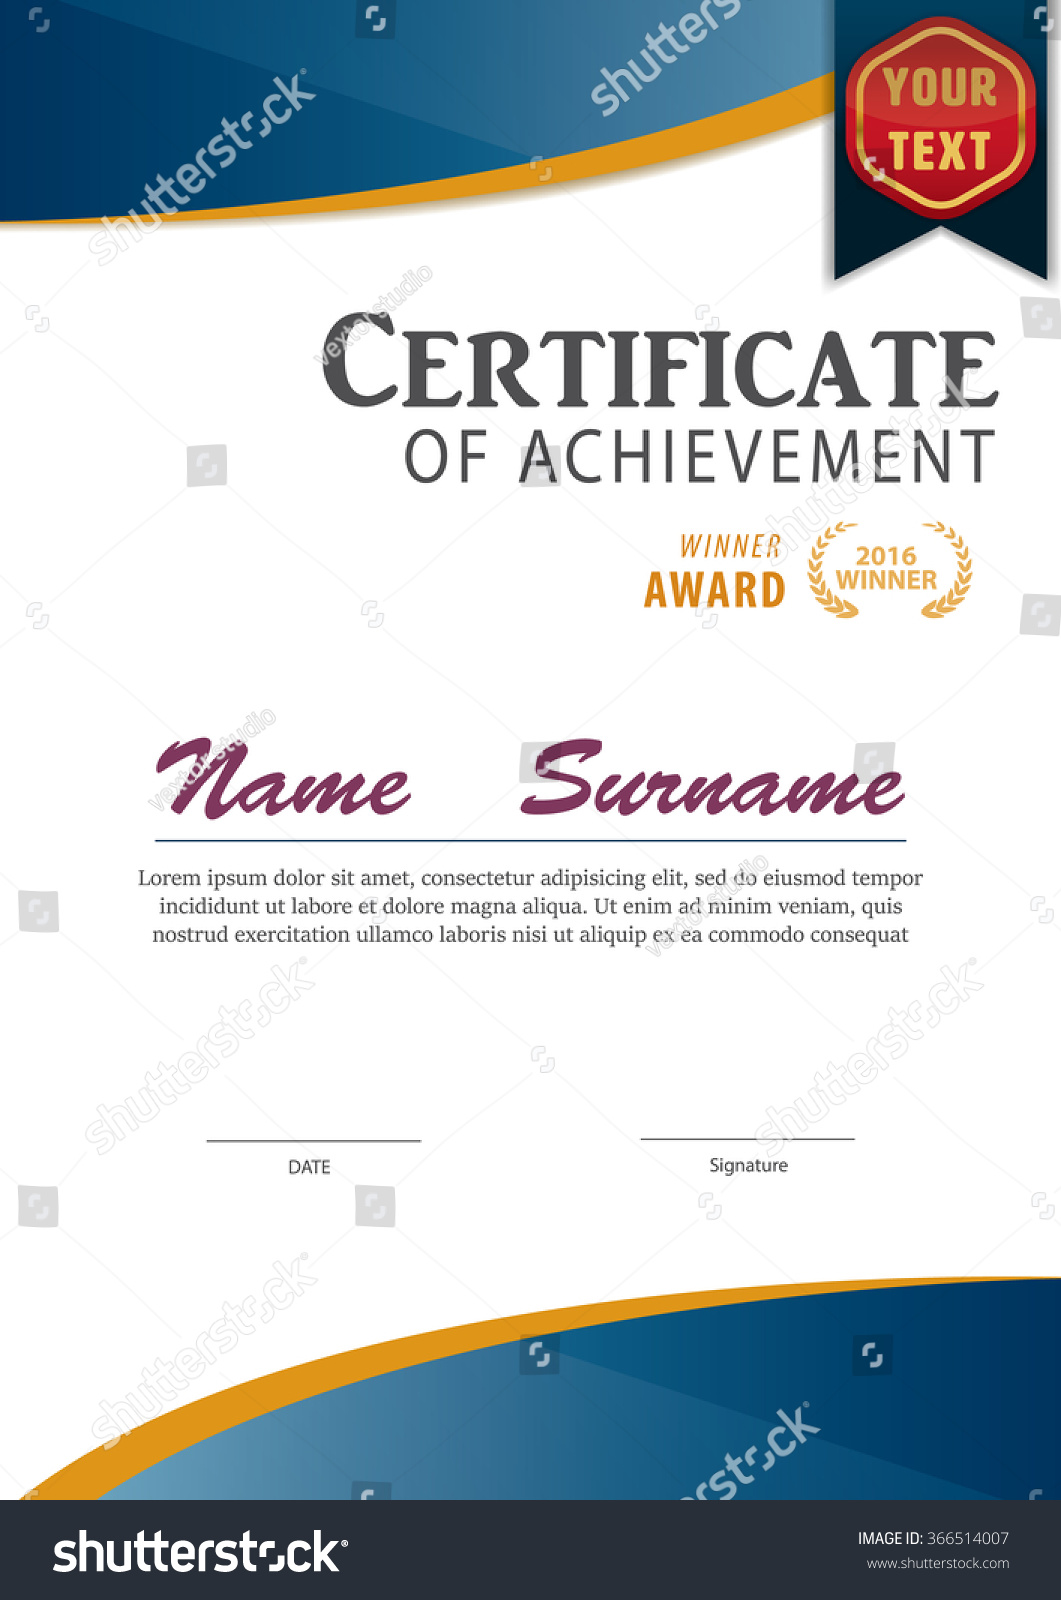 Royalty free certificate templatediploma layouta4 366514007 certificate templatediploma layouta4 size vector 366514007 yelopaper Images